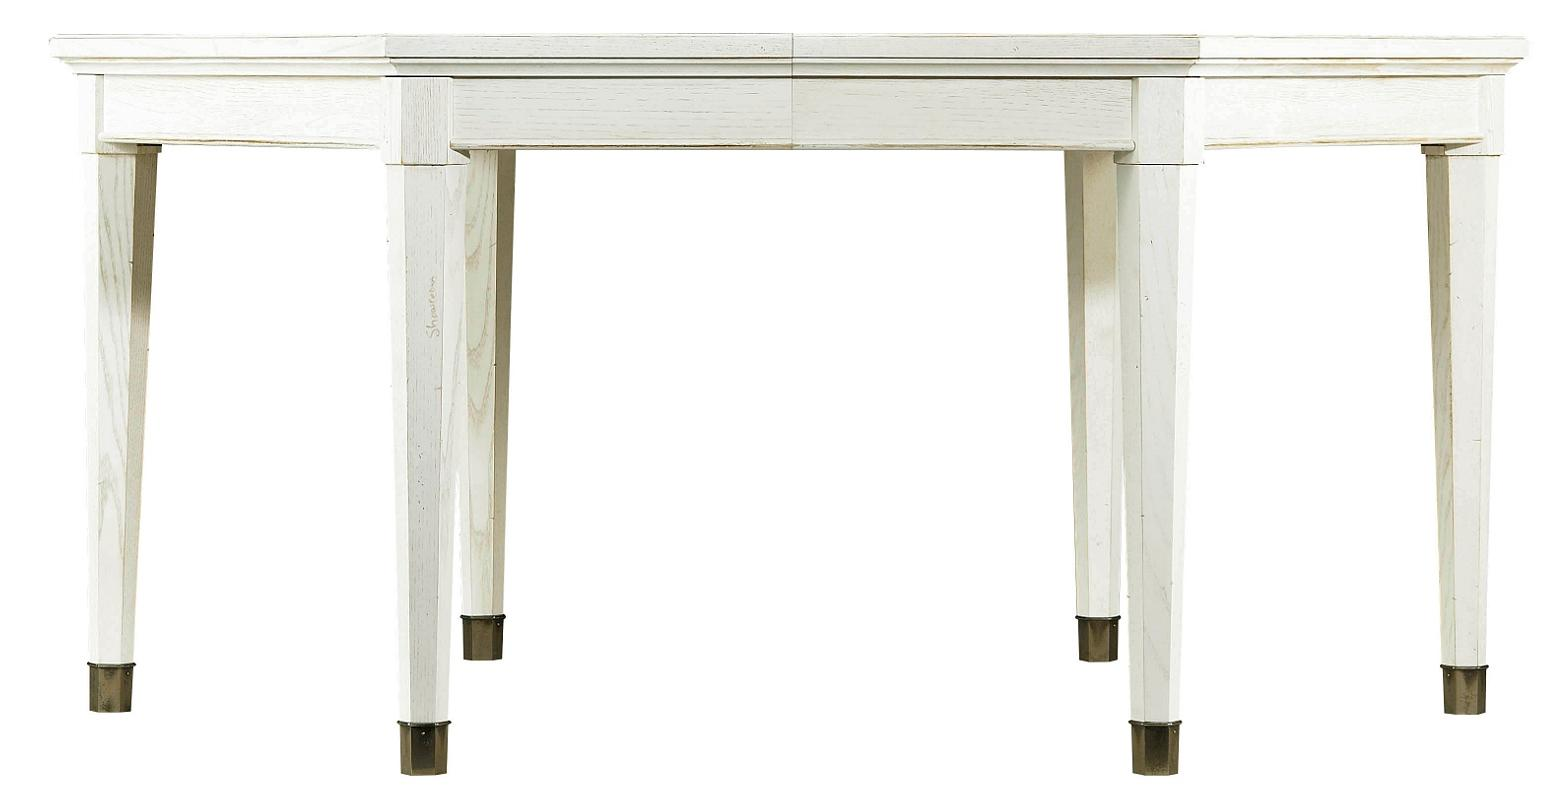 Stanley Furniture Coastal Living Resort Soledad Promenade Leg Table - Item Number: 062-A1-32